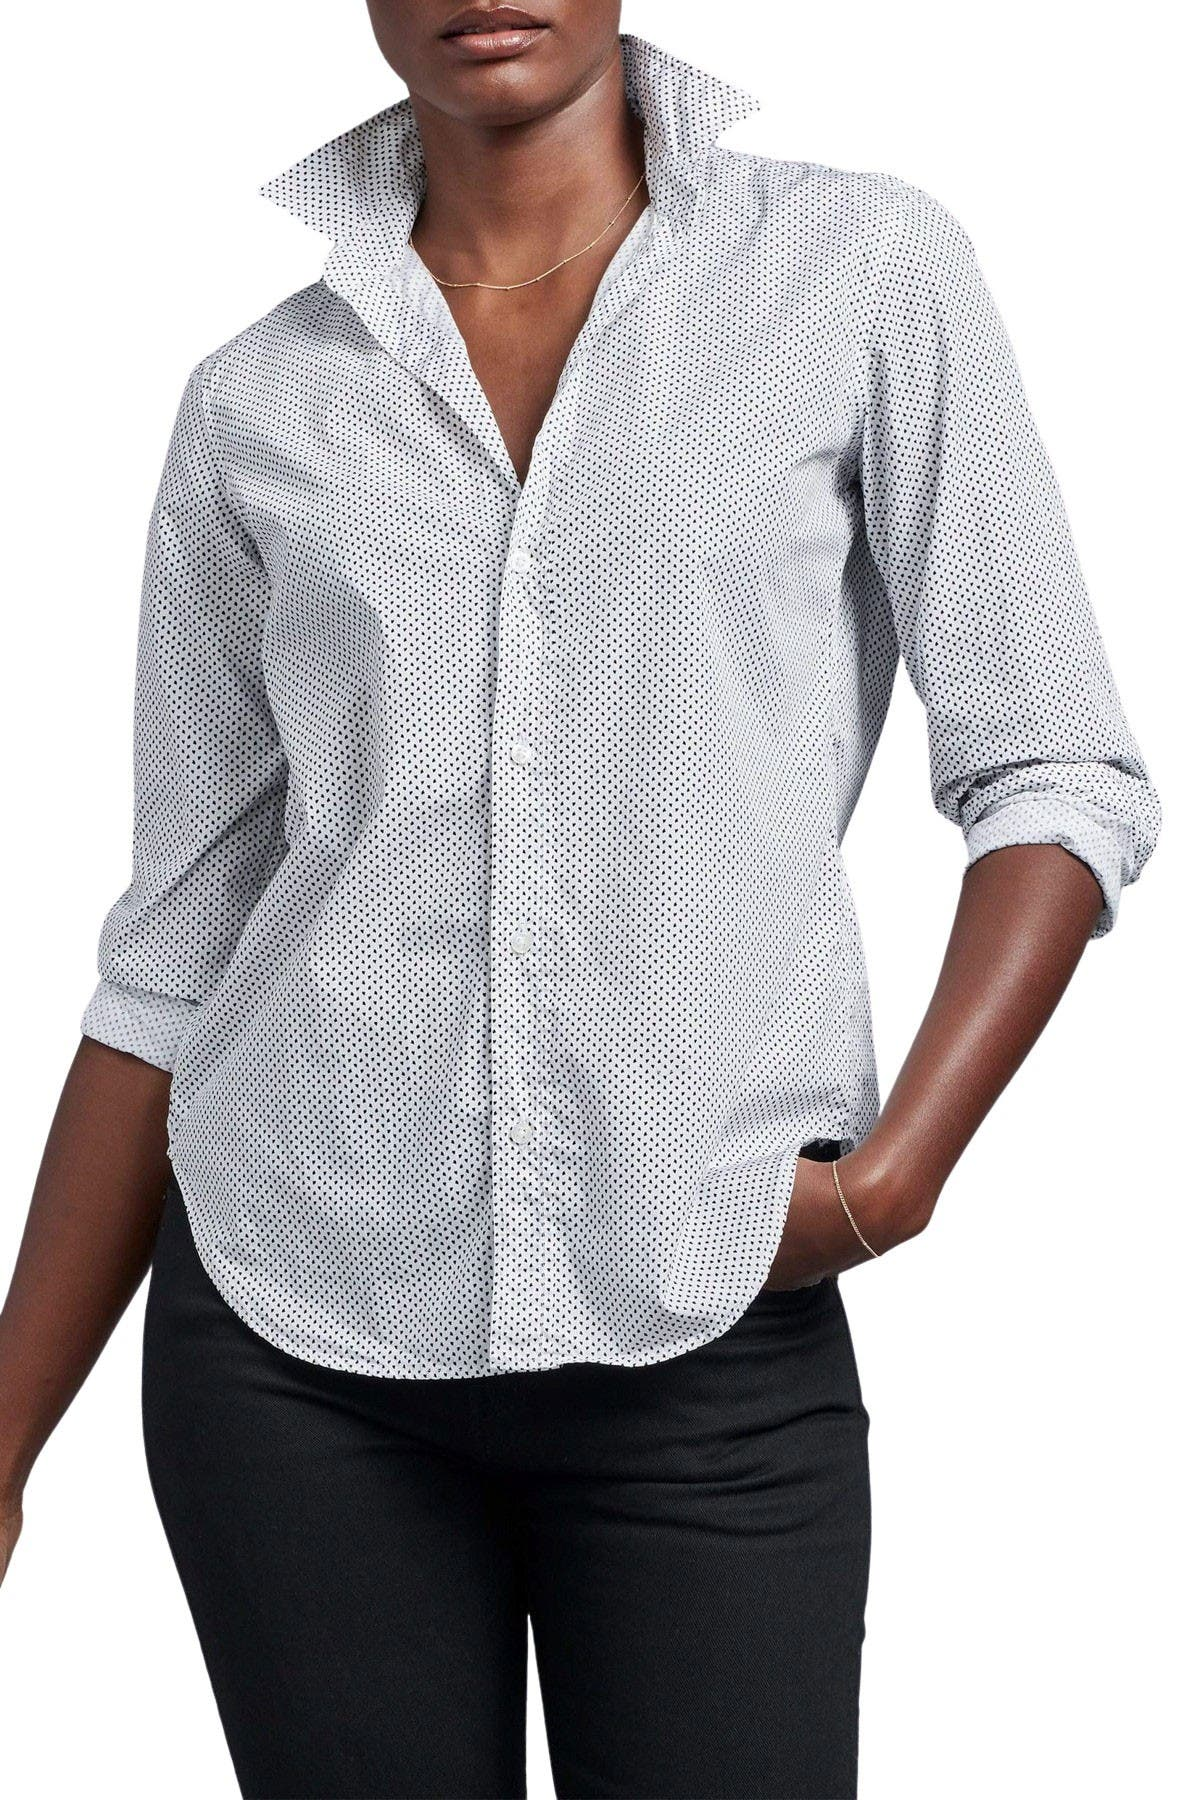 Image of FRANK & EILEEN Frank Woven Collared Shirt